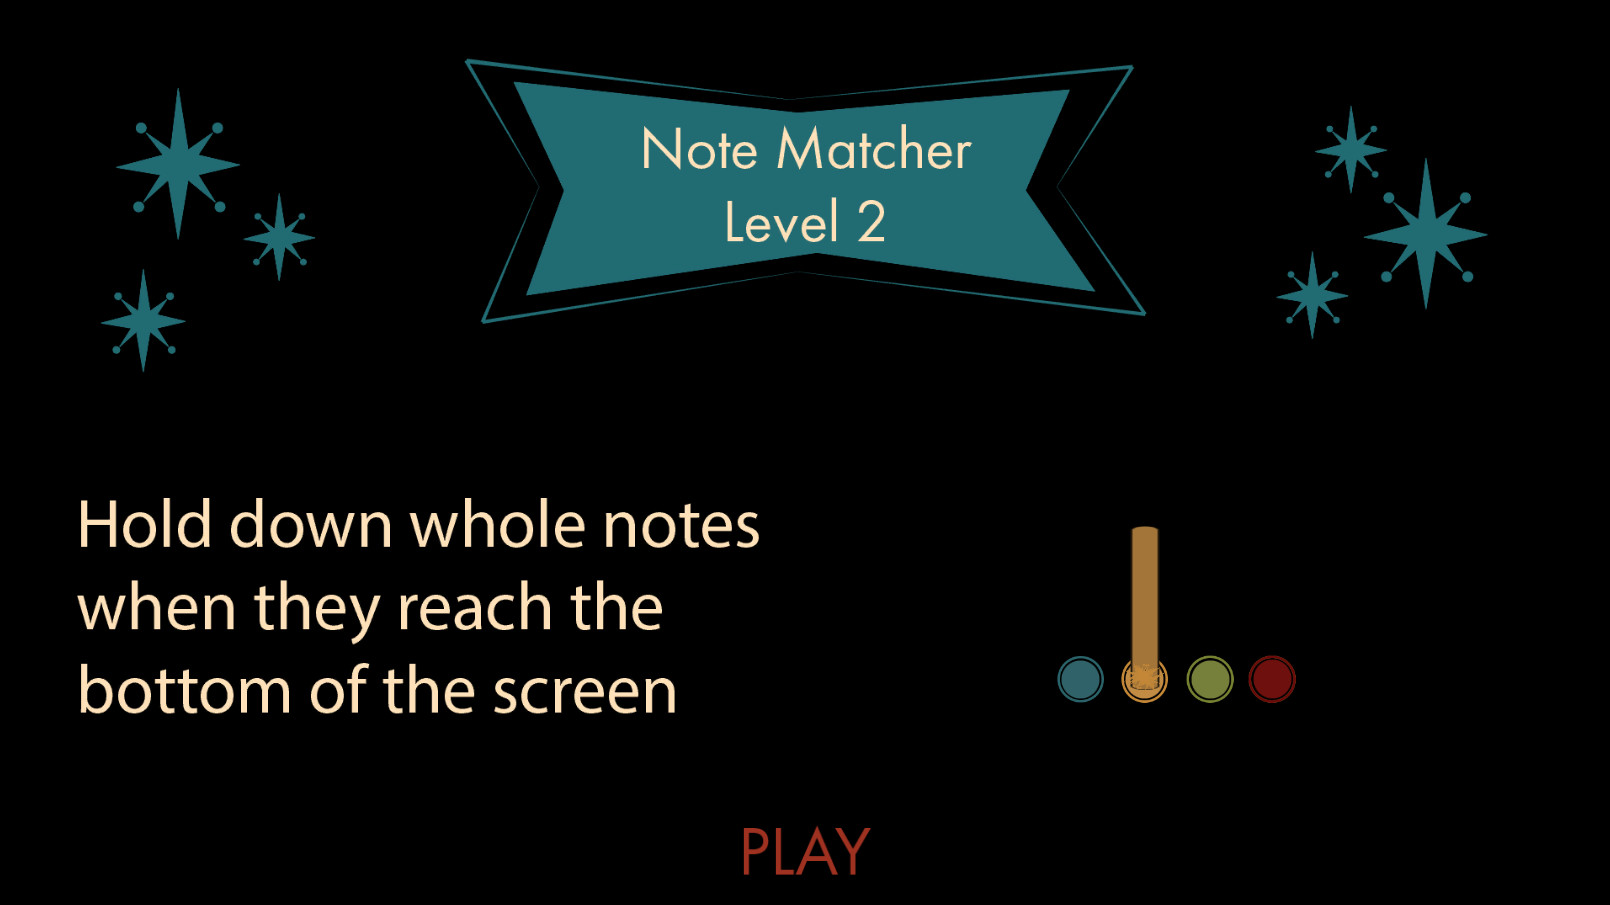 Note Matcher info screen that explains to the player how to play that type of mini game. It also has an example gameplay gif on the side.